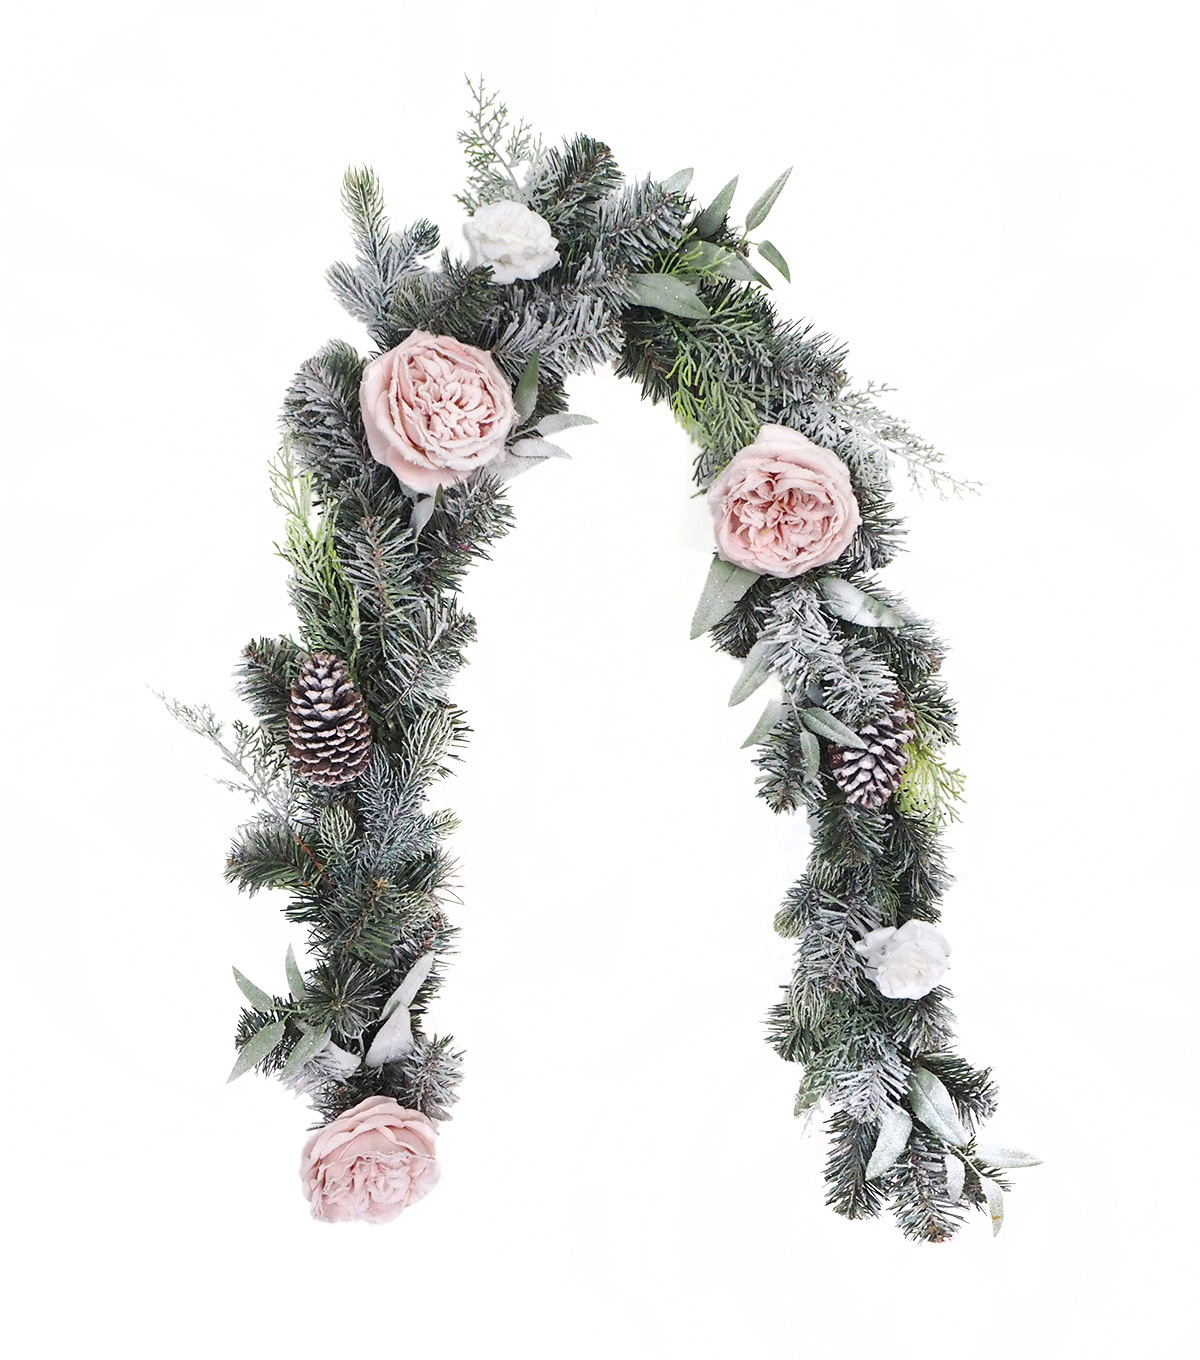 Blooming Holiday Christmas 3''x66'' Frosted Rose & Pinecone Garland                      Blooming Holiday Christmas 3''x66'' Frosted Rose & Pinecone Garland by Blooming Holiday